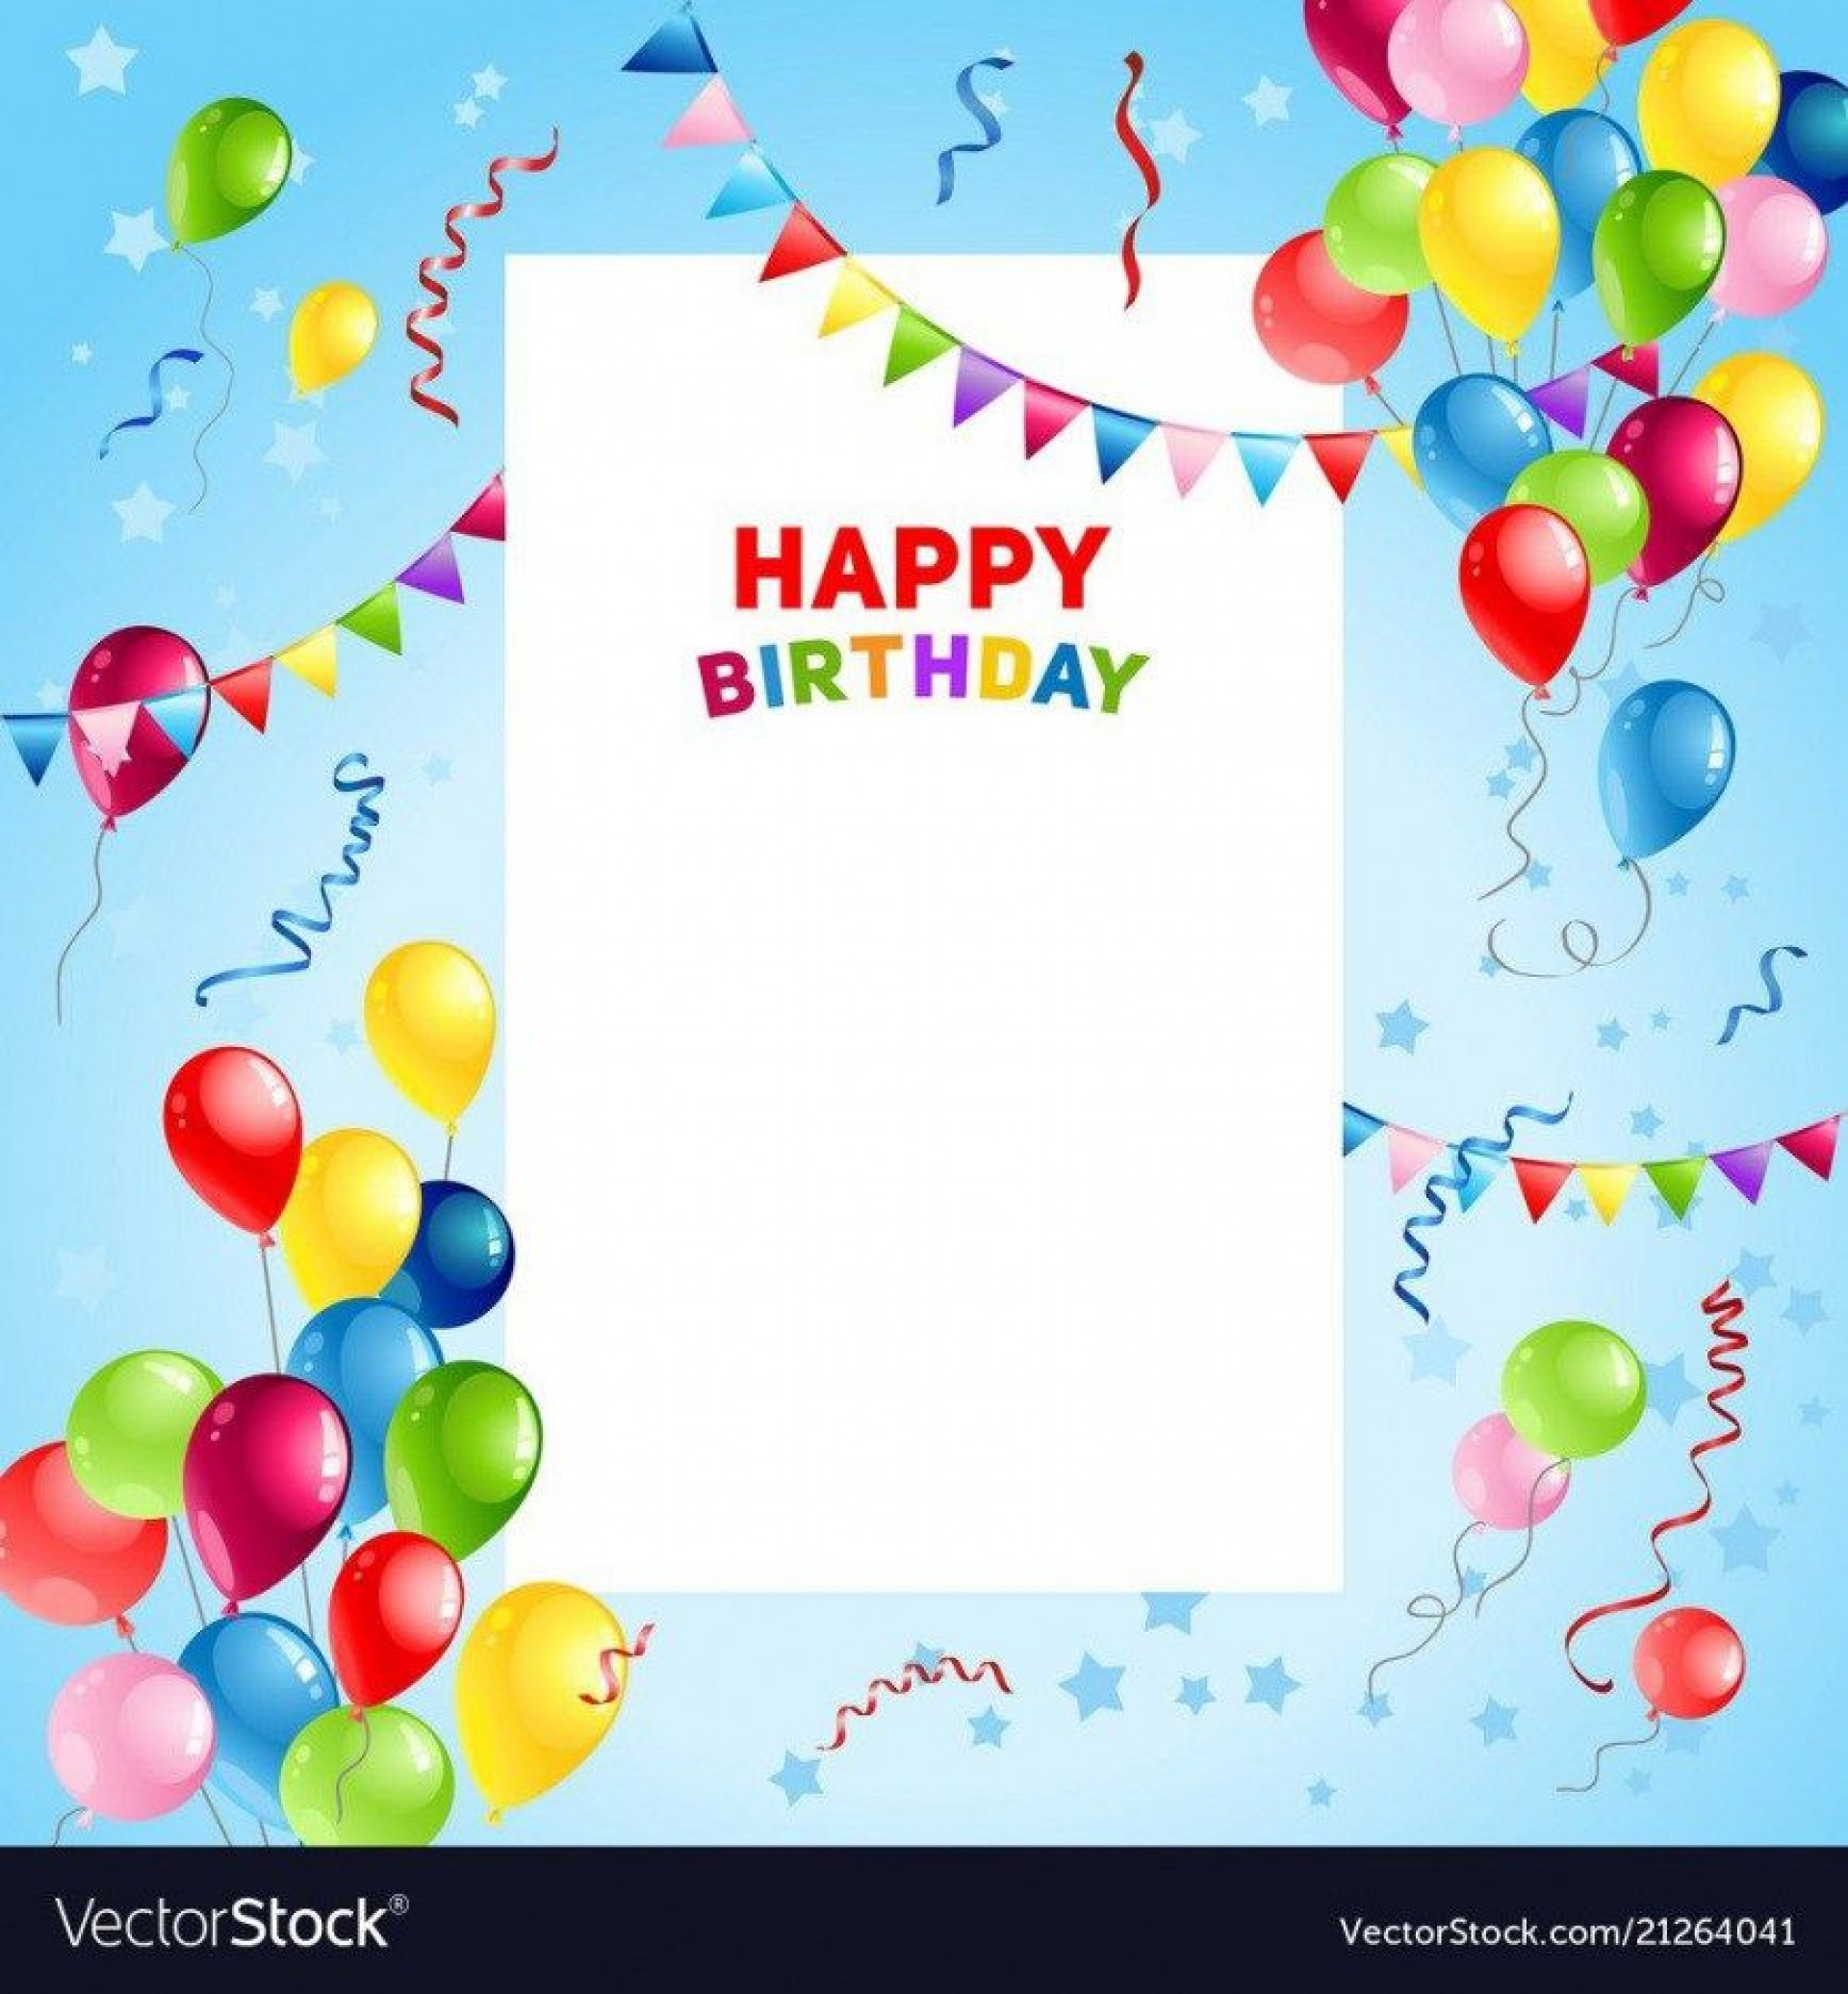 010 Wondrou Blank Birthday Card Template For Word High Resolution  Free1920